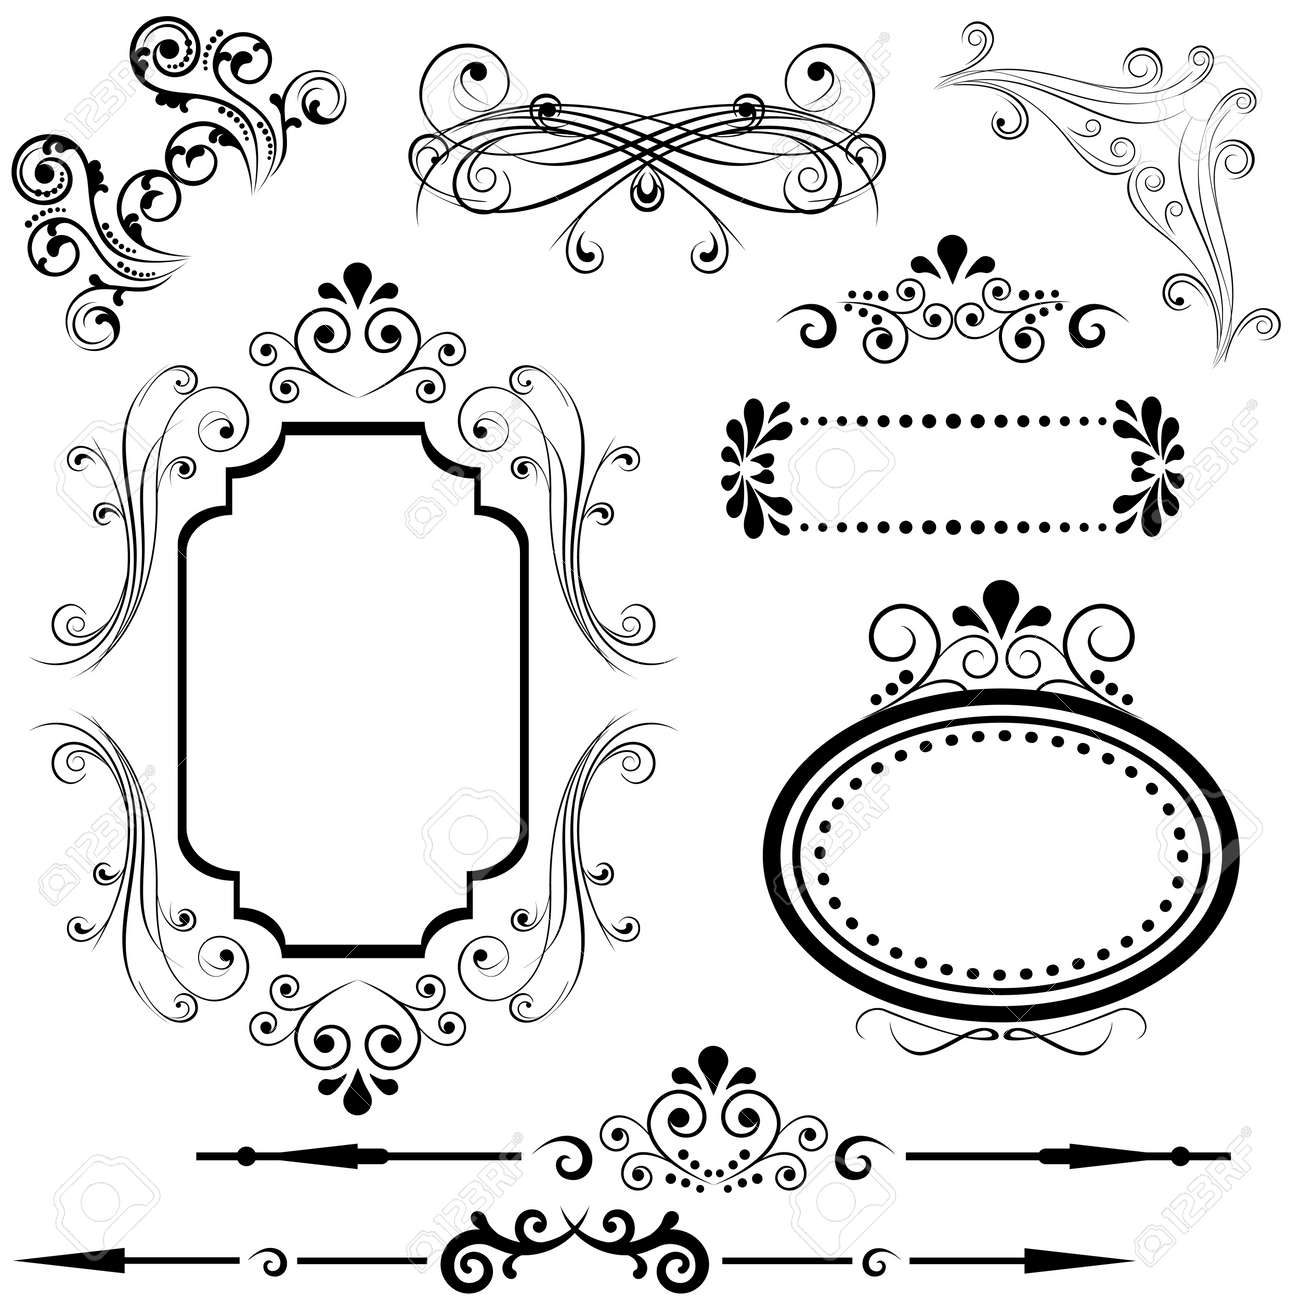 Calligraphic Border And Frame Designs Royalty Free Cliparts